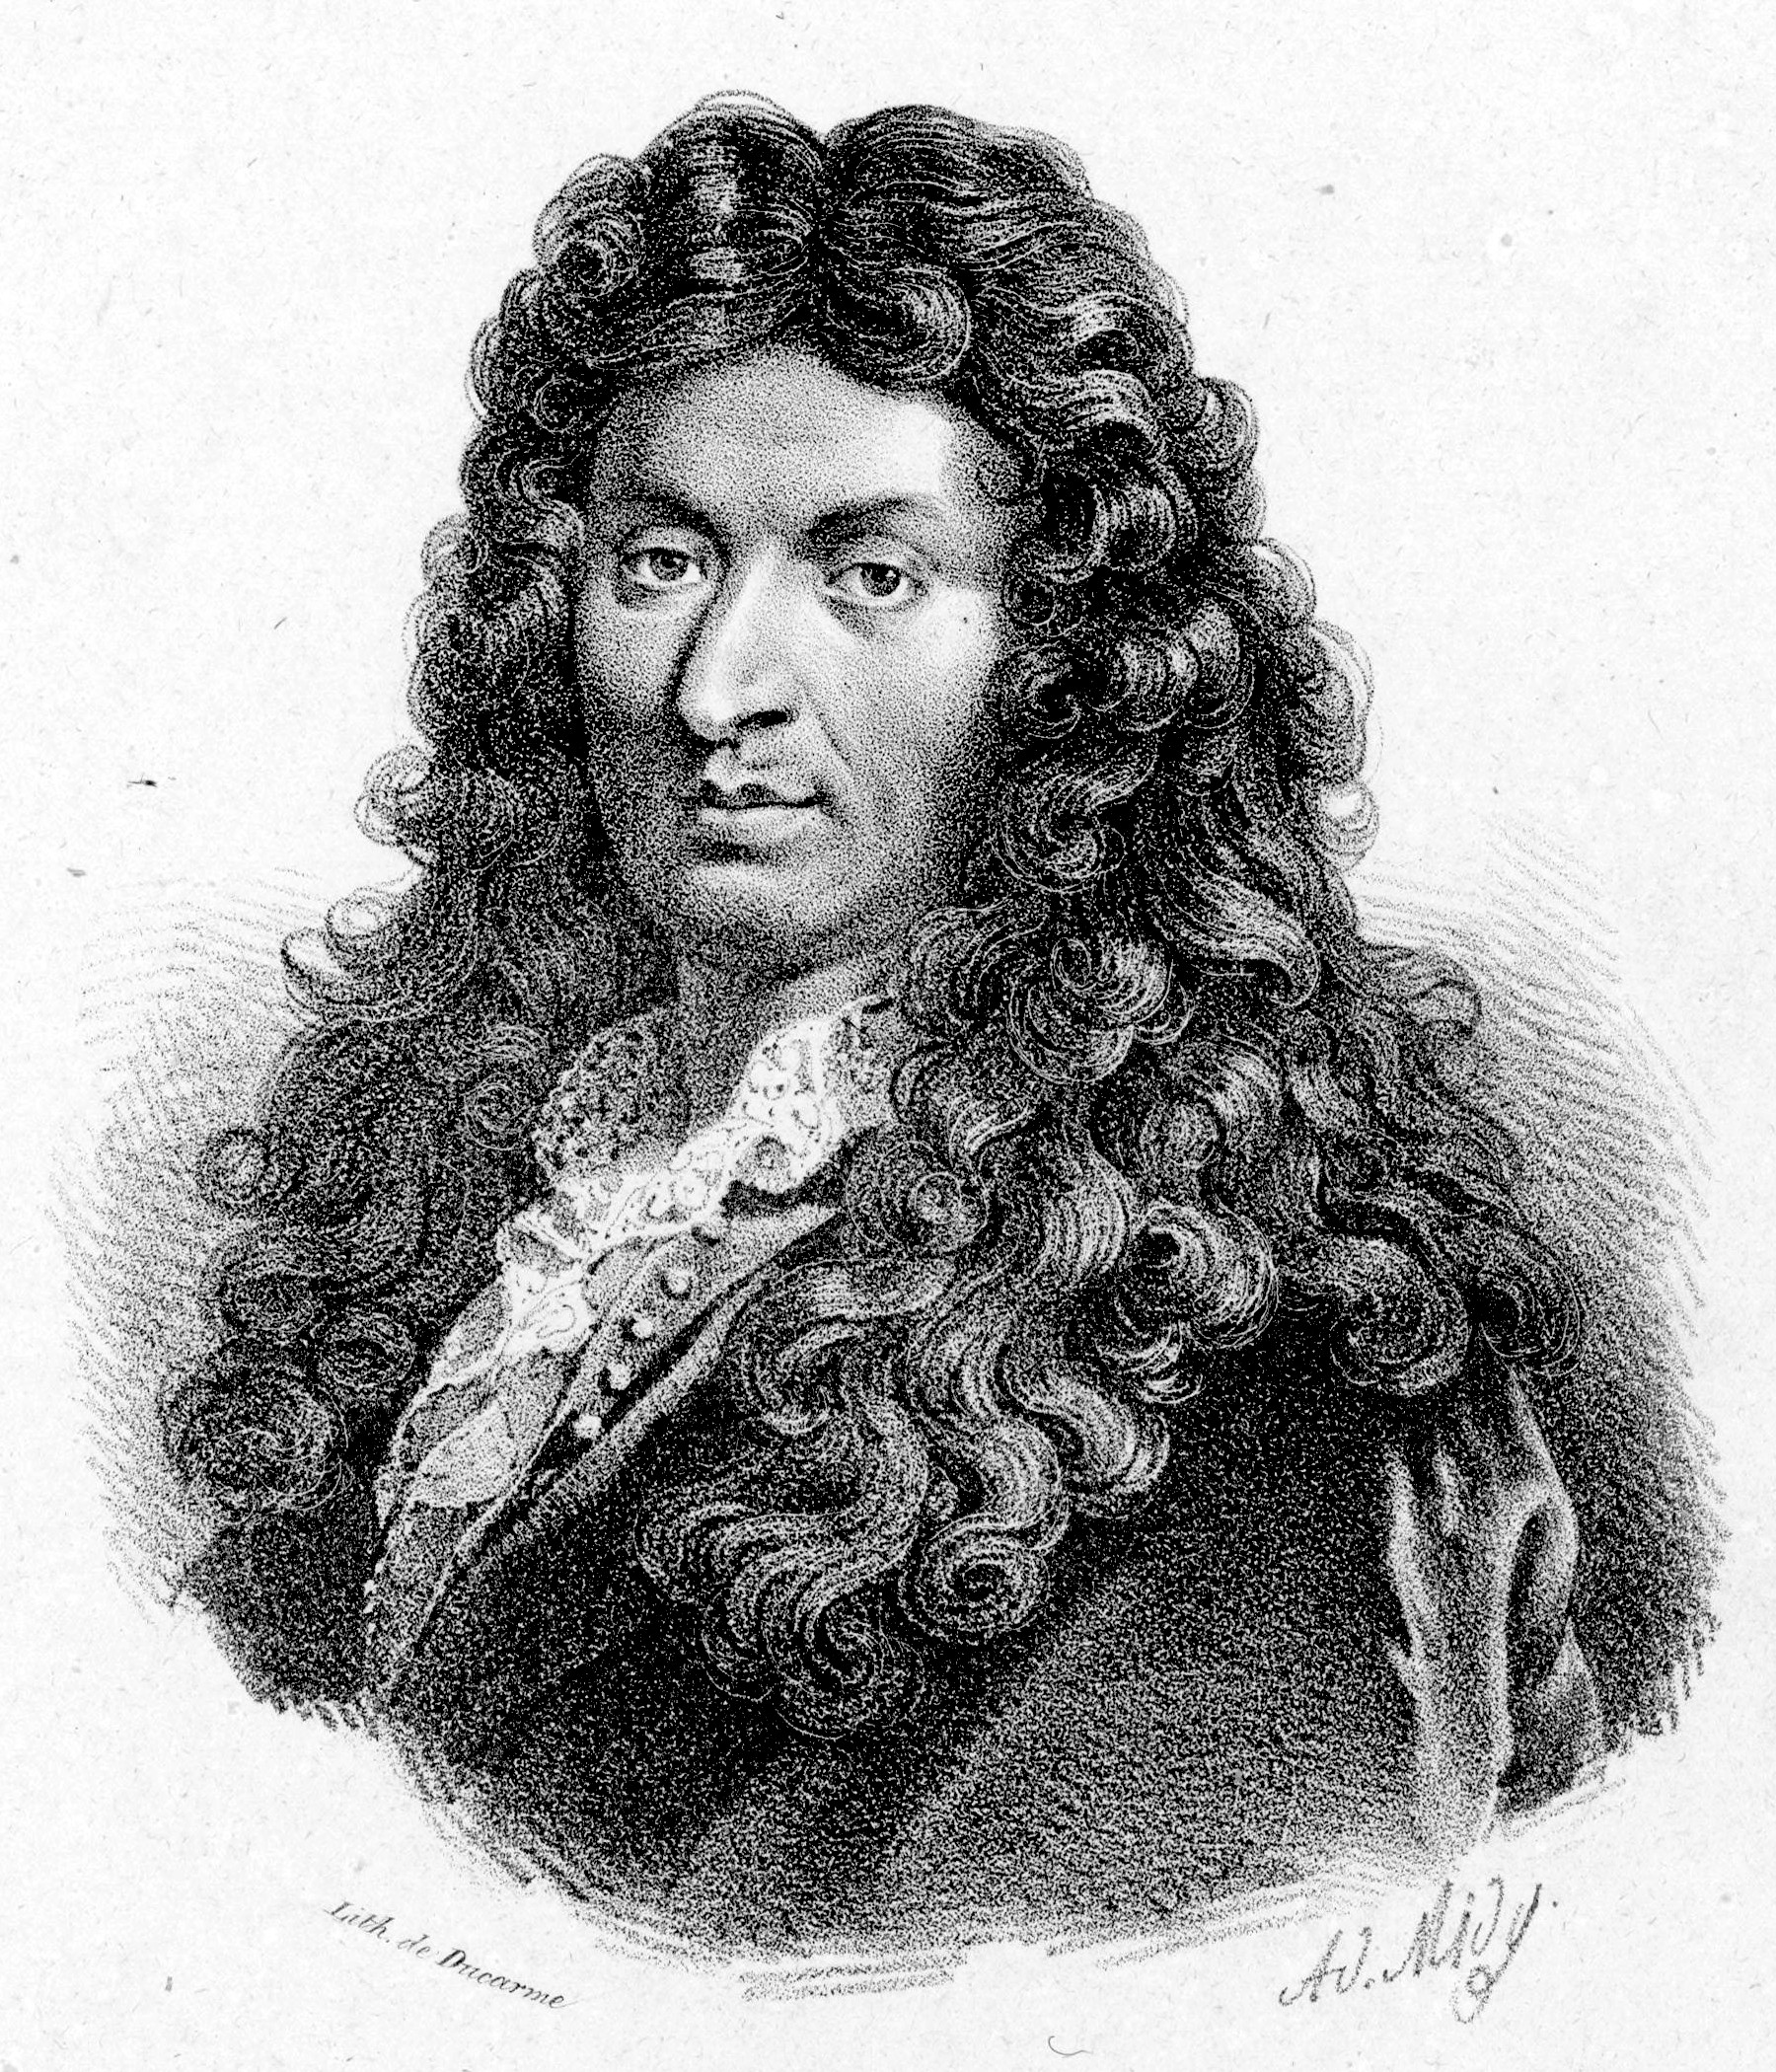 File:Jean-Baptiste Lully.jpeg